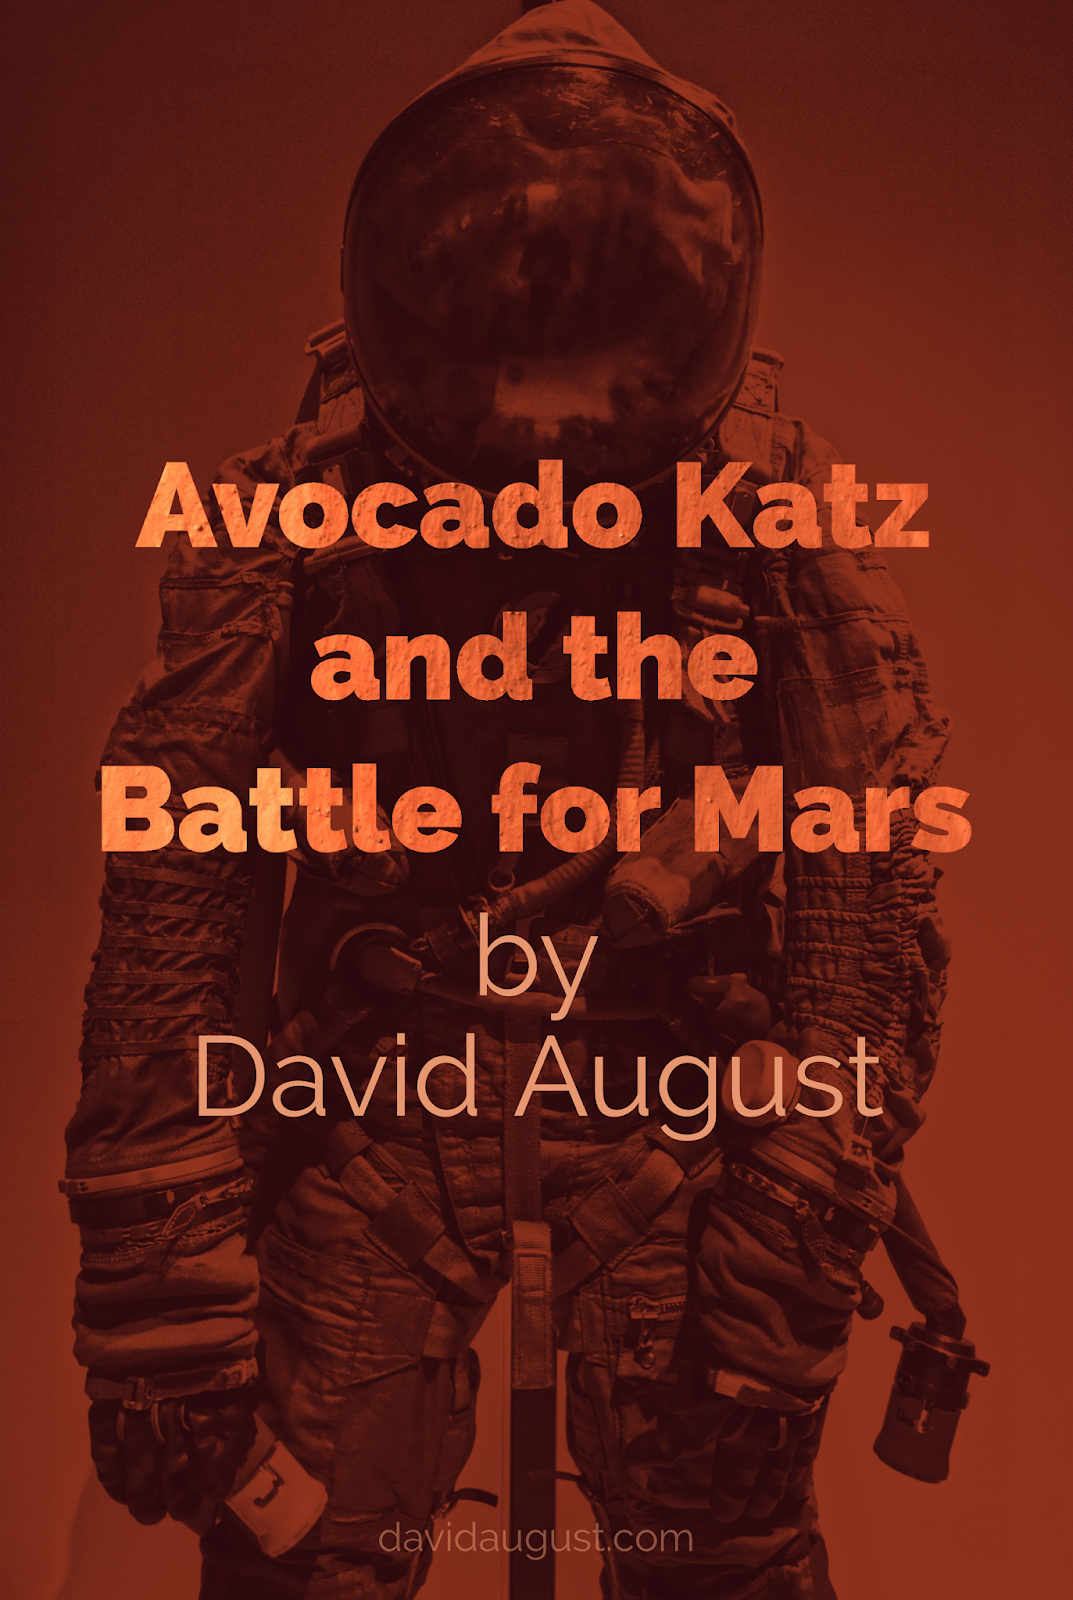 cover image for 'Avocado Katz and the Battle for Mars' by David August